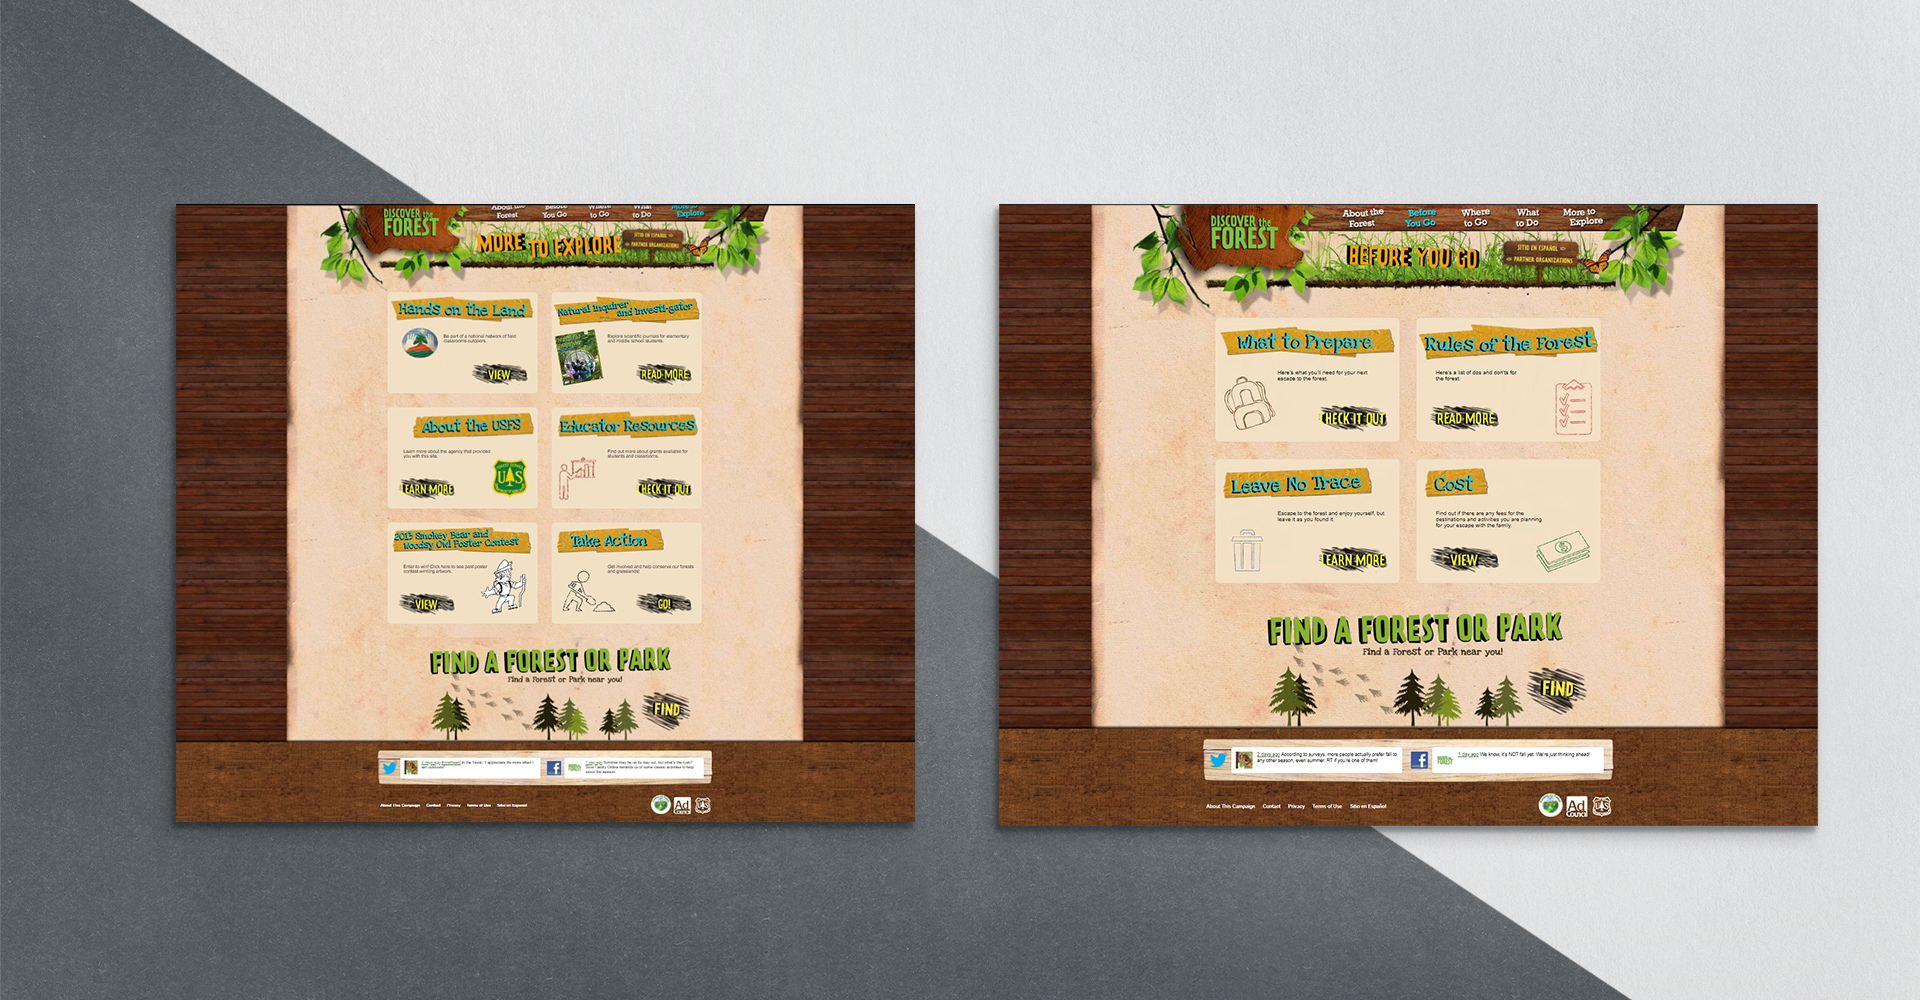 Discover the Forest website